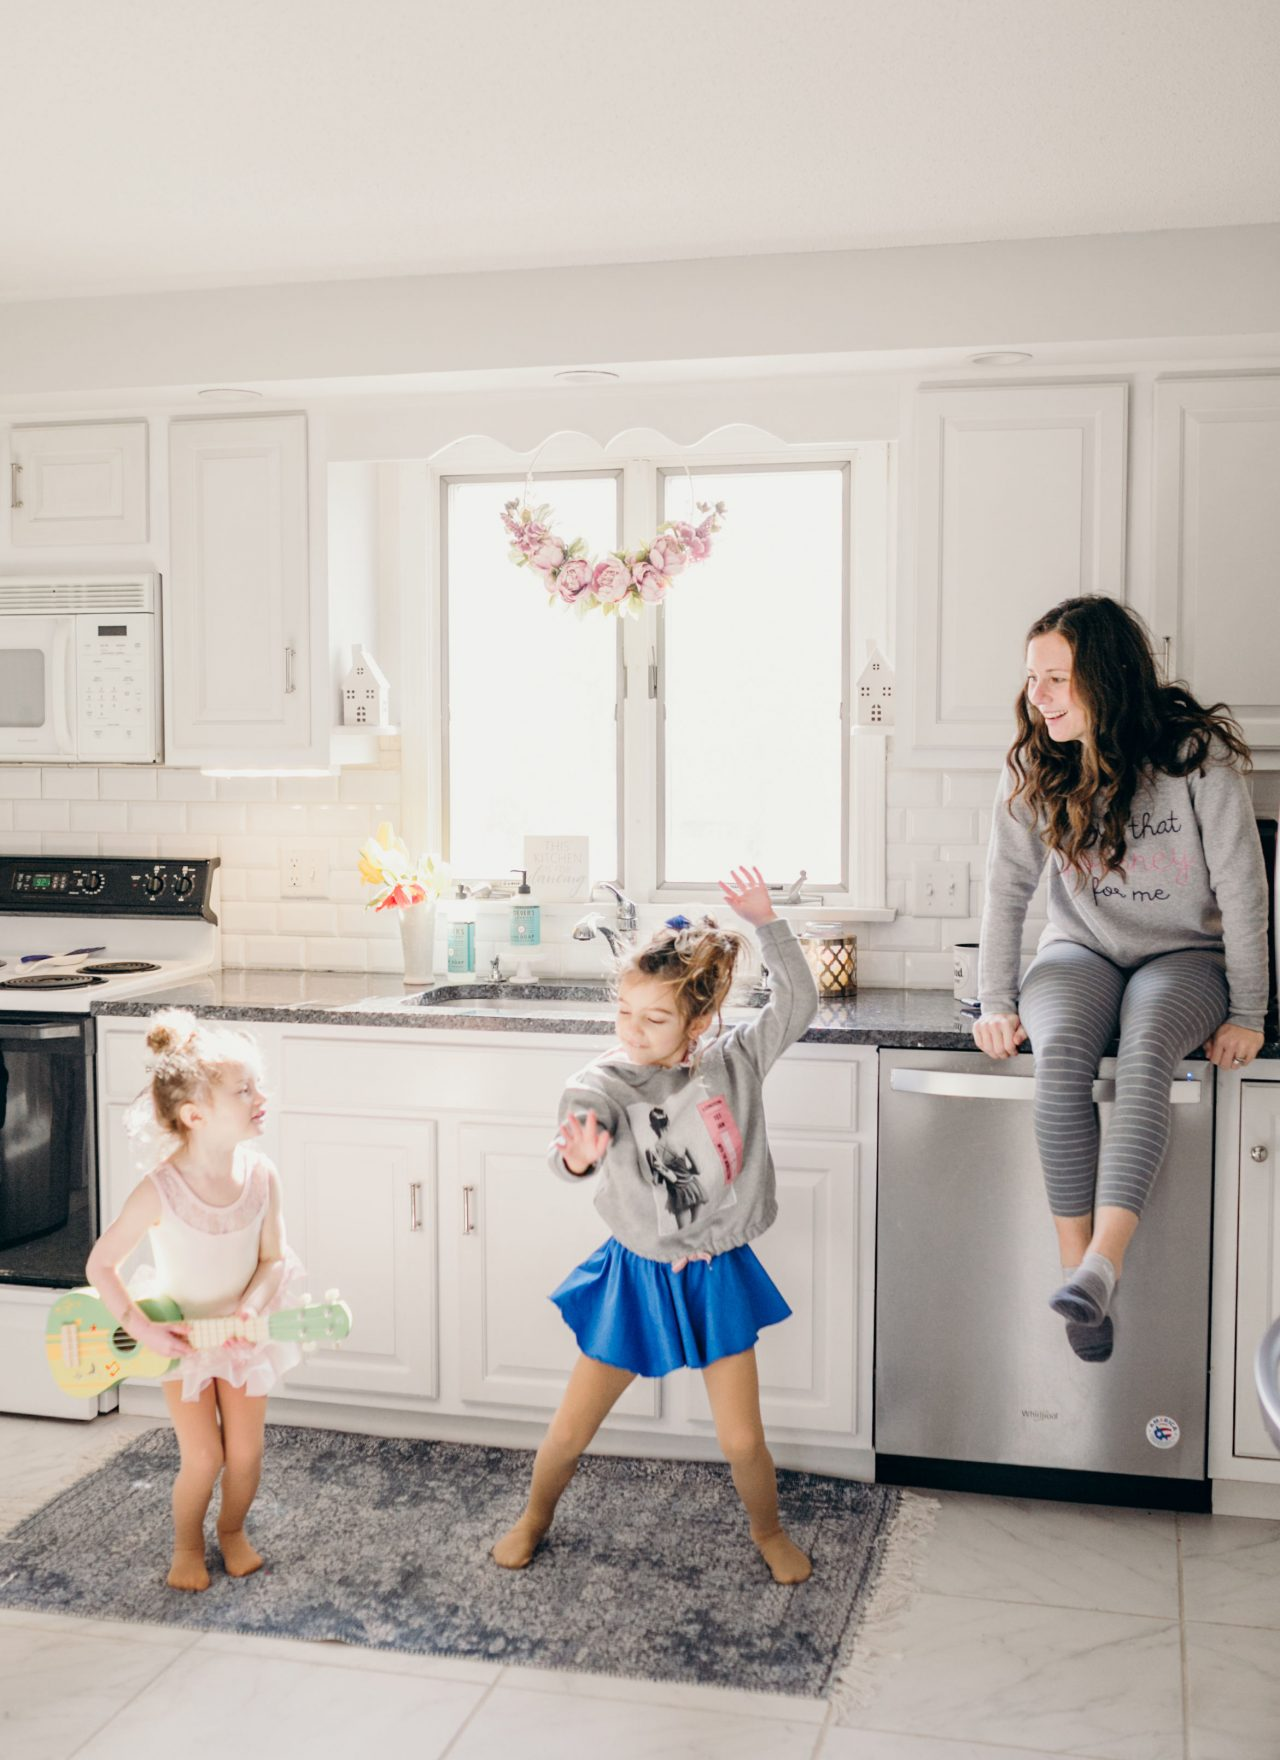 Mom sitting on counter watching kids dance in kitchen